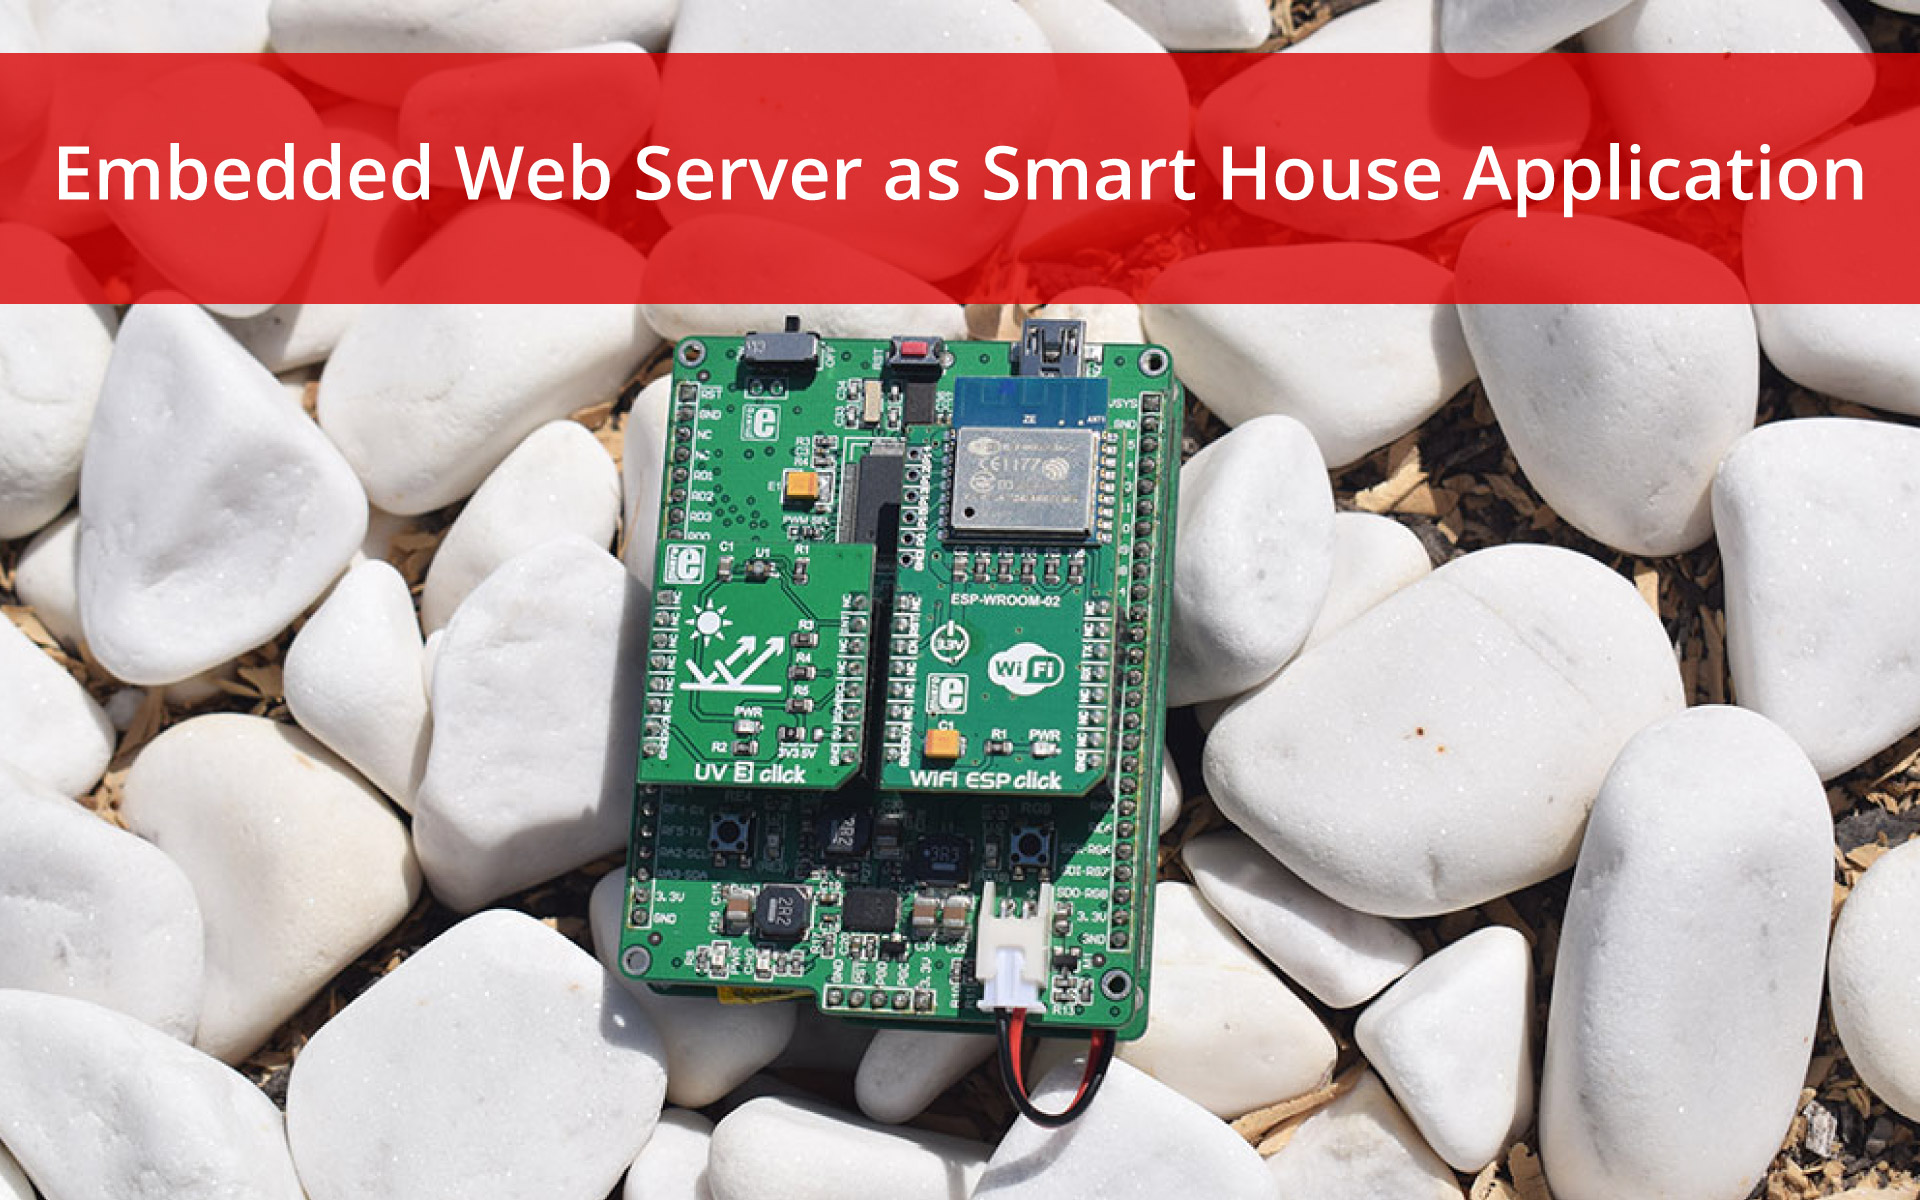 Embedded Web Server as Smart House Application